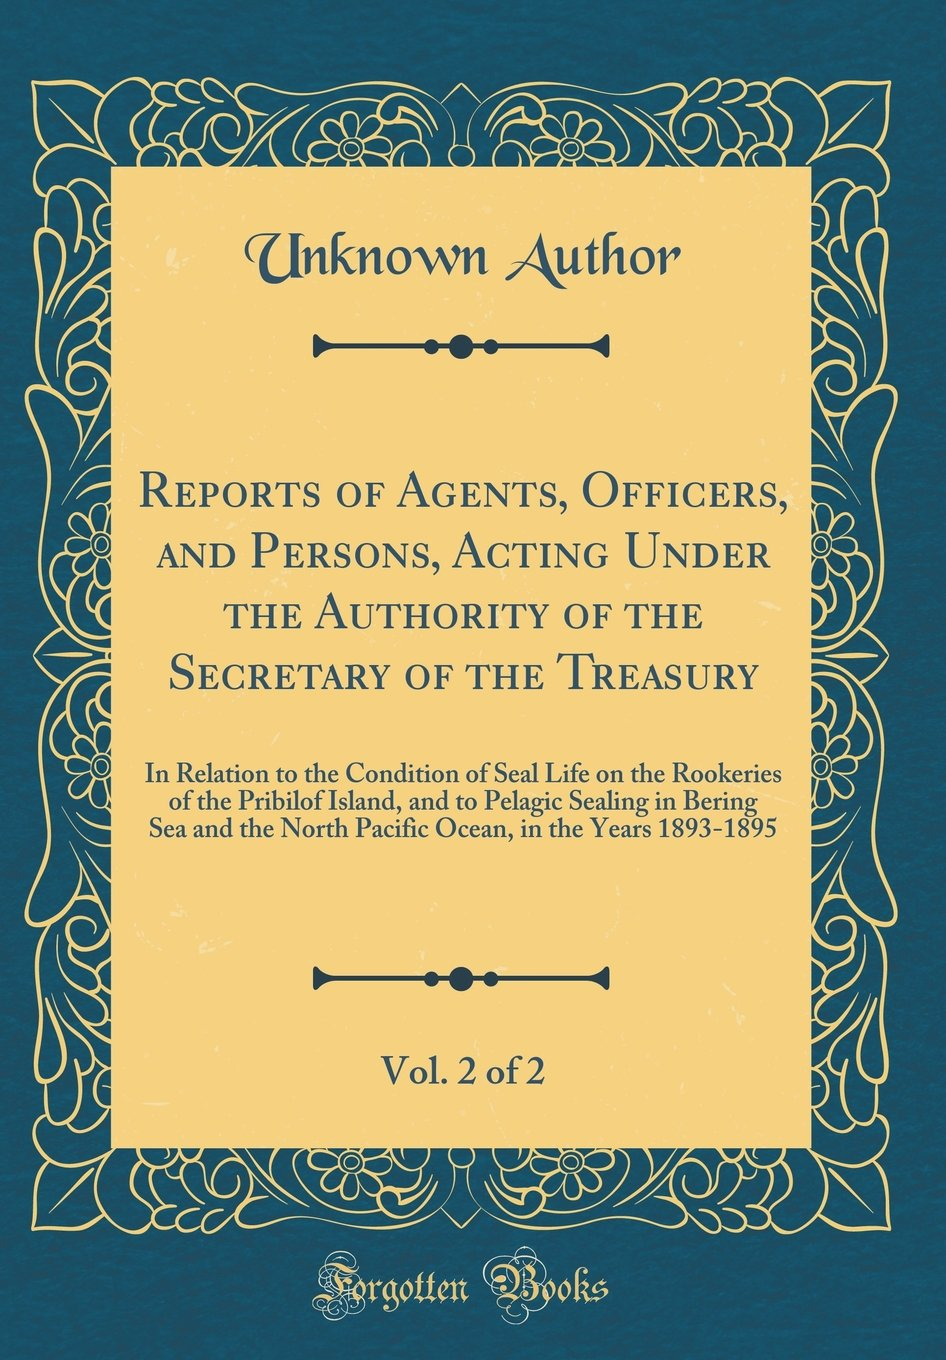 Download Reports of Agents, Officers, and Persons, Acting Under the Authority of the Secretary of the Treasury, Vol. 2 of 2: In Relation to the Condition of ... Sealing in Bering Sea and the North Pacif pdf epub